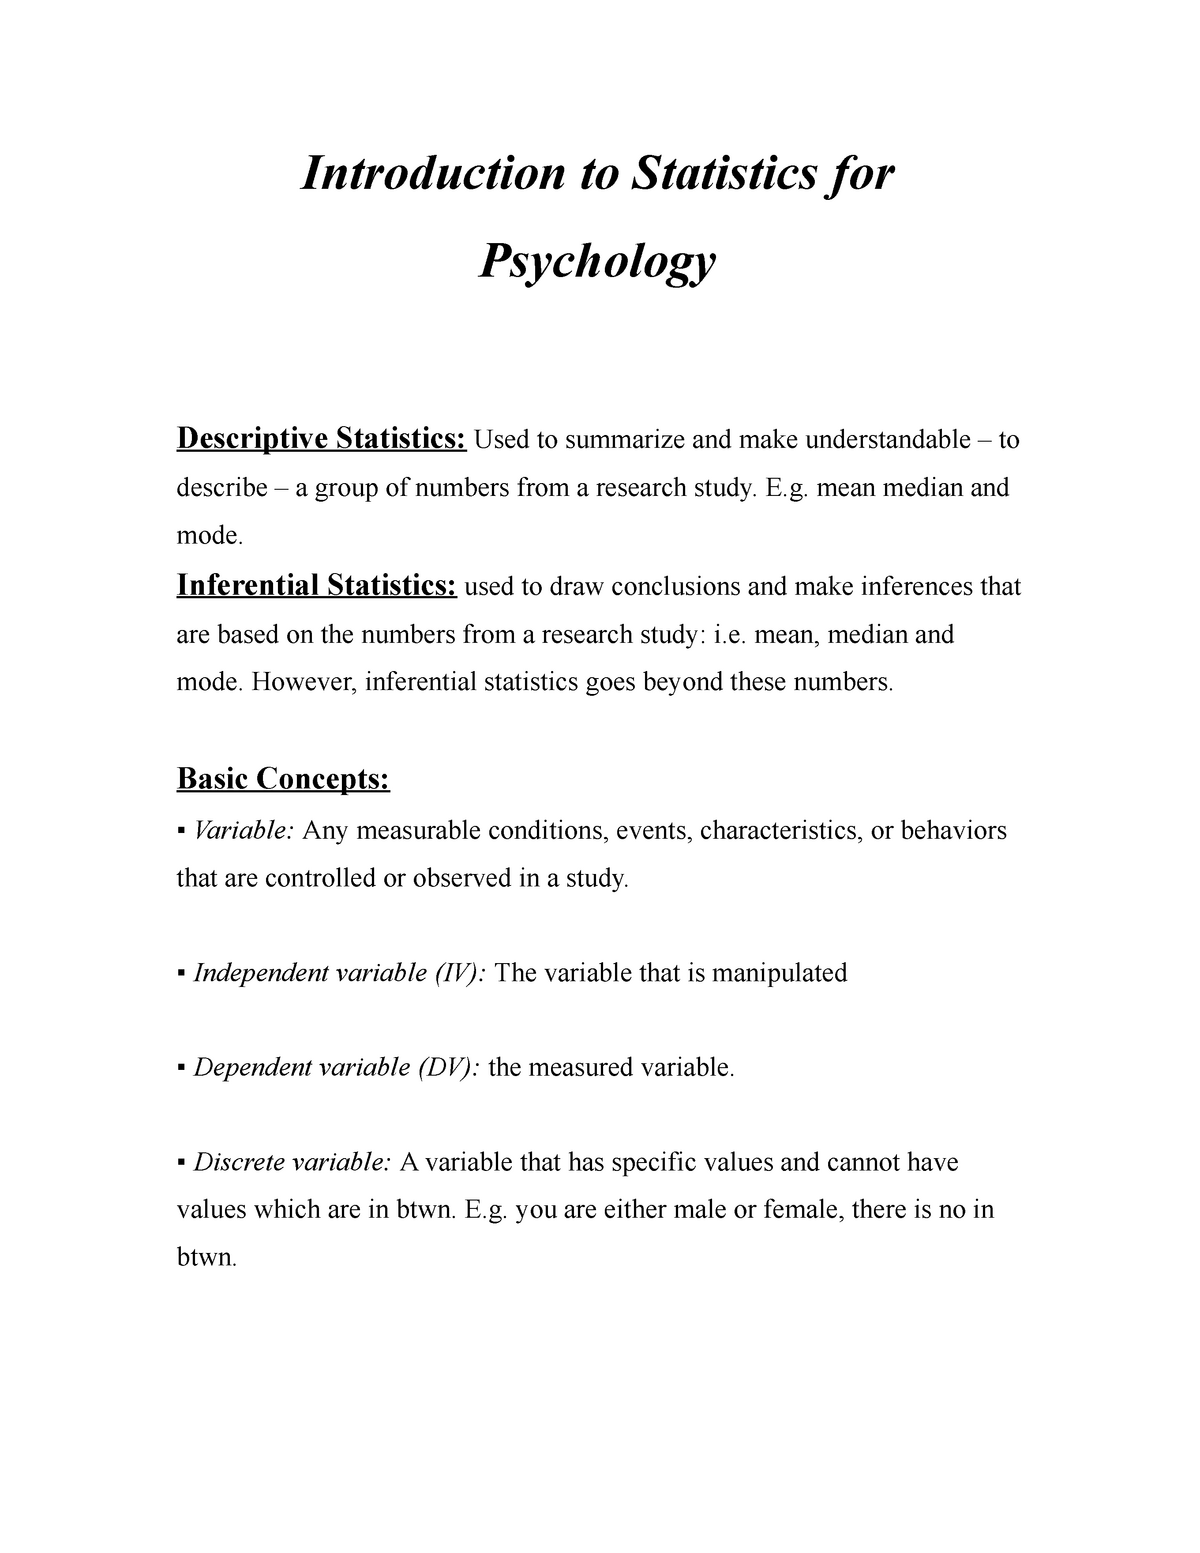 Summary - Introduction to Statistics for Psychology - Bond